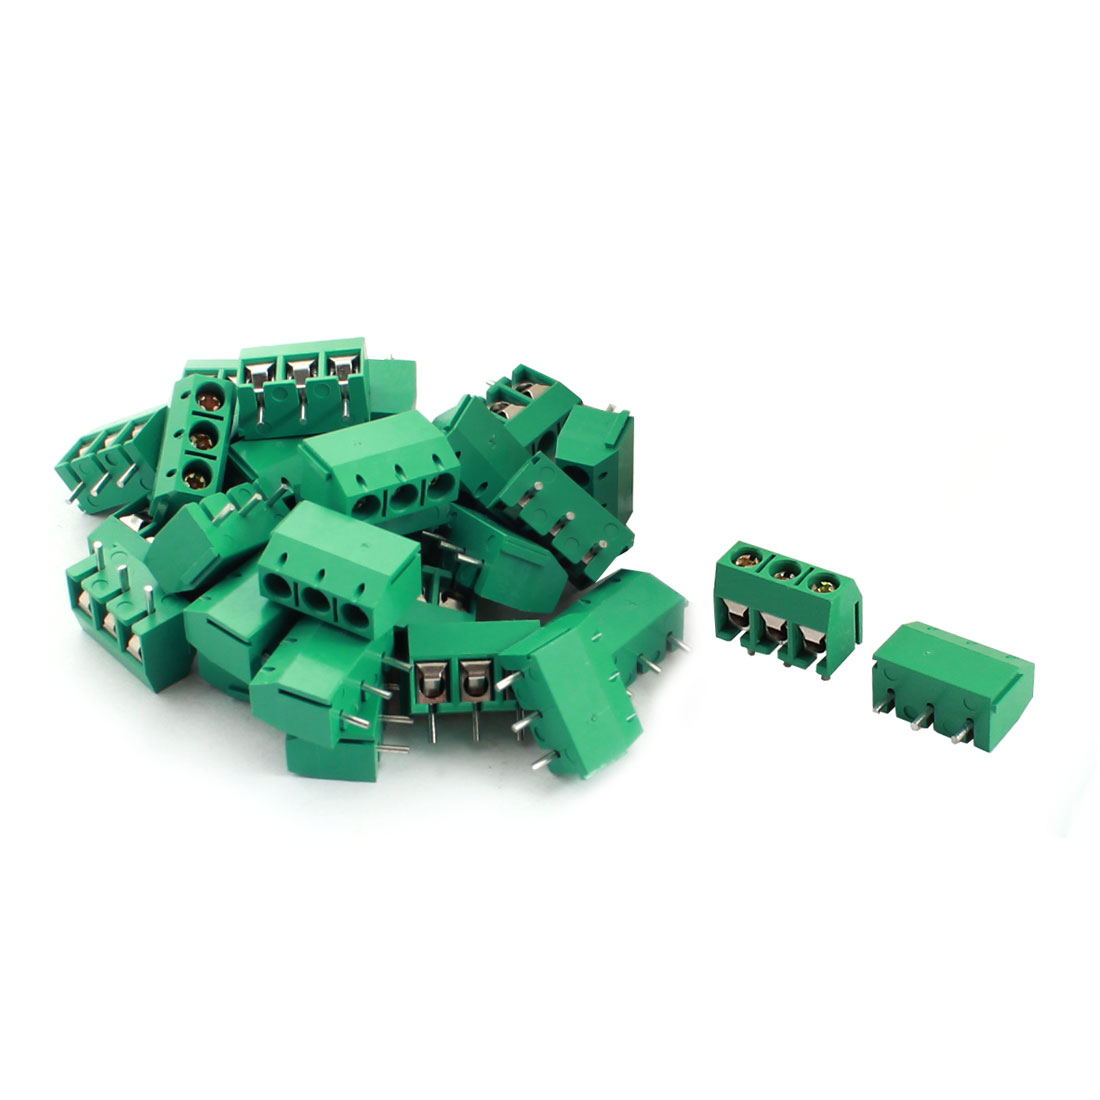 30Pcs 12A 300V 3 Way Barrier Screw Terminal Block Connector 5.08mm Pitch Green